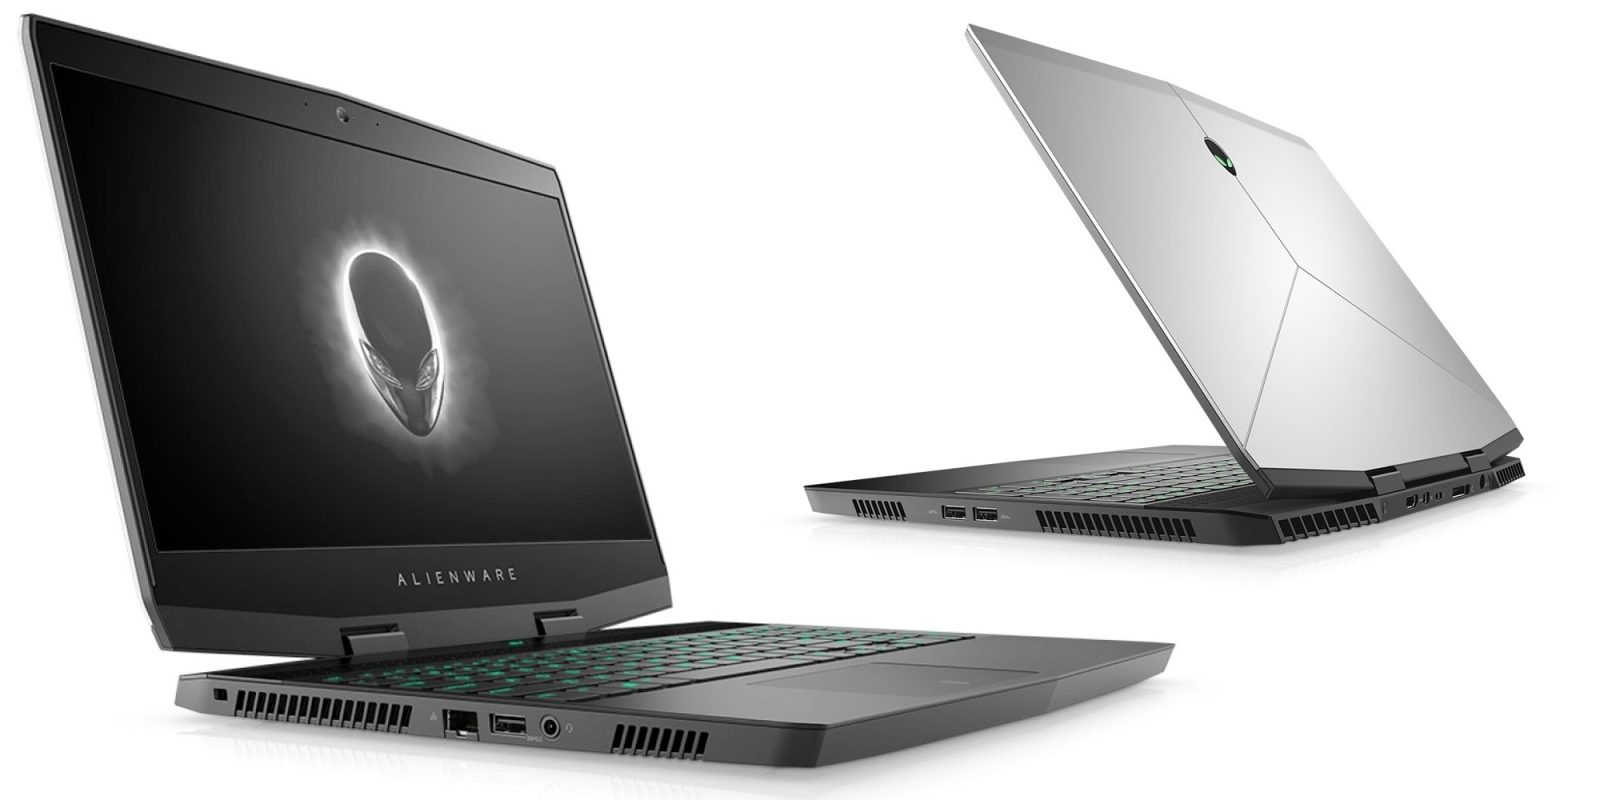 Dell's Alienware m15 laptop has the latest i7, GTX 1080